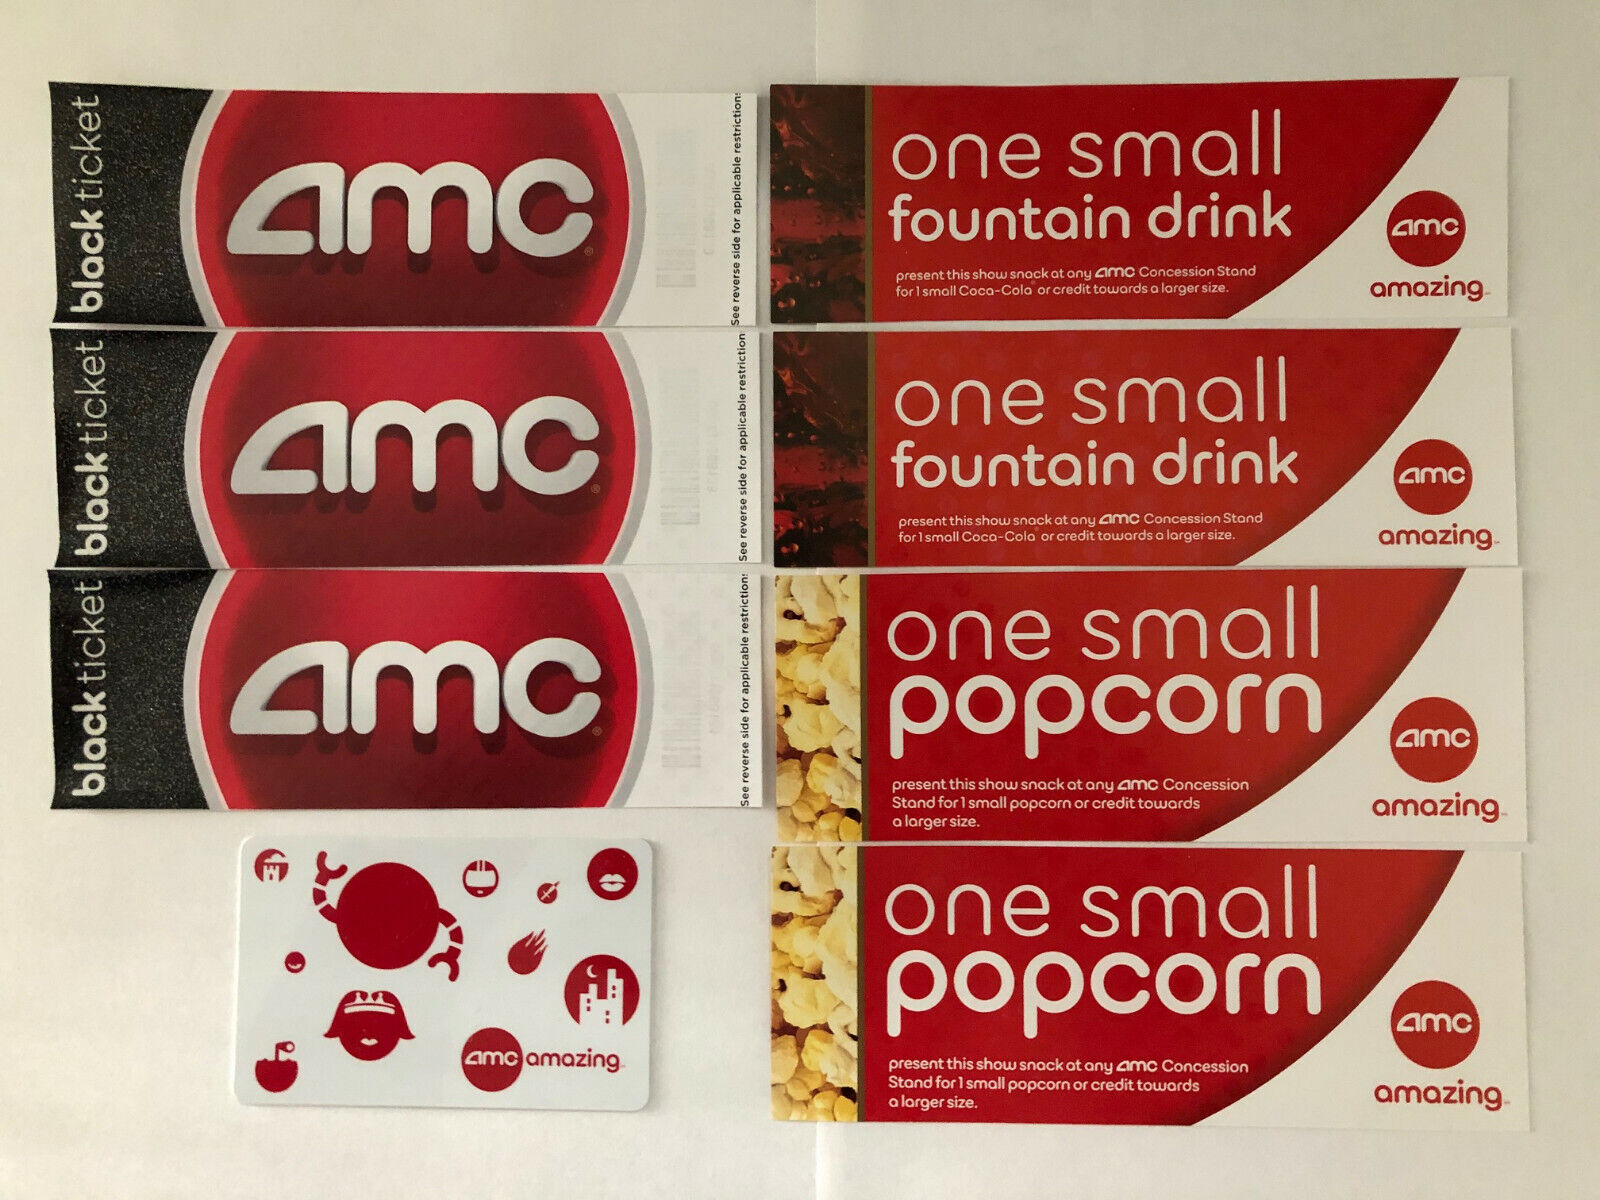 3 AMC Theater Black Movie Tickets With 2 Drinks, 2 Popcorns, One 5 Gift Card - $25.00